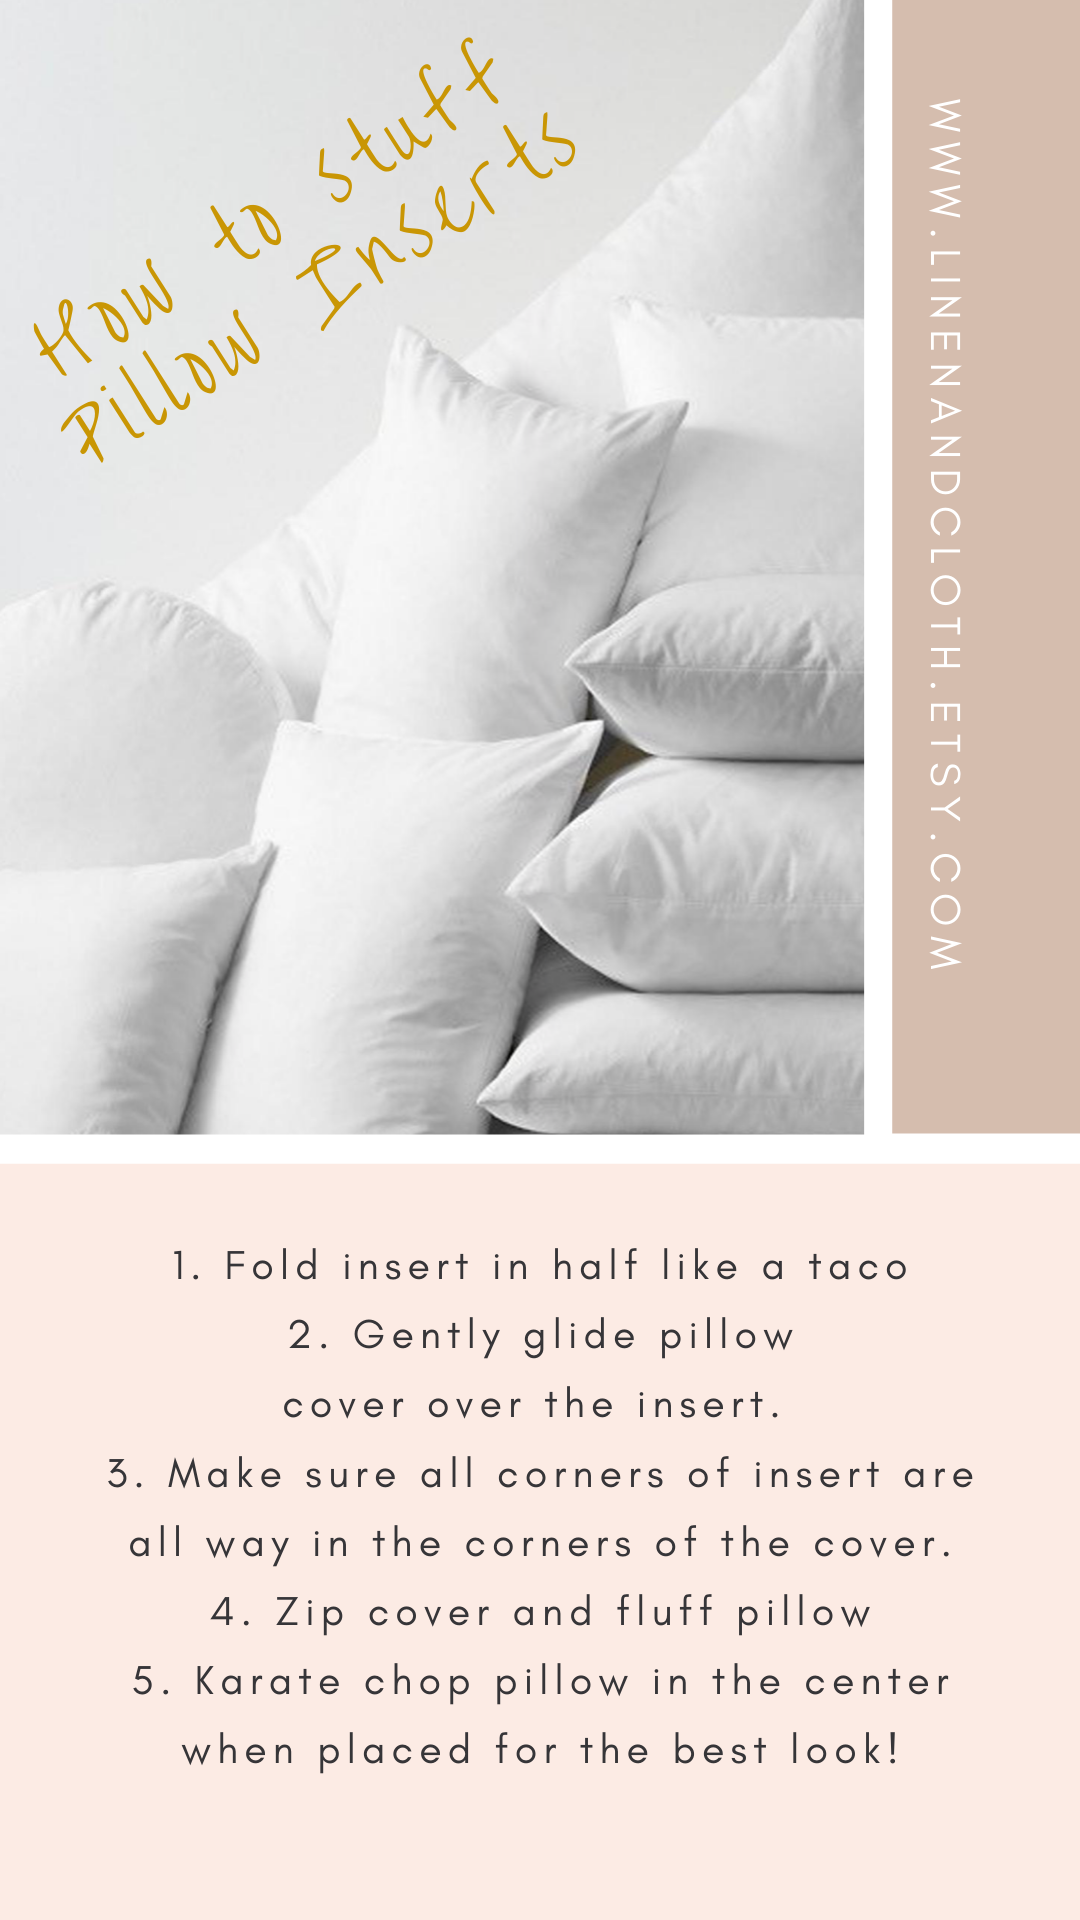 How To Stuff Pillow Inserts 1. Fold